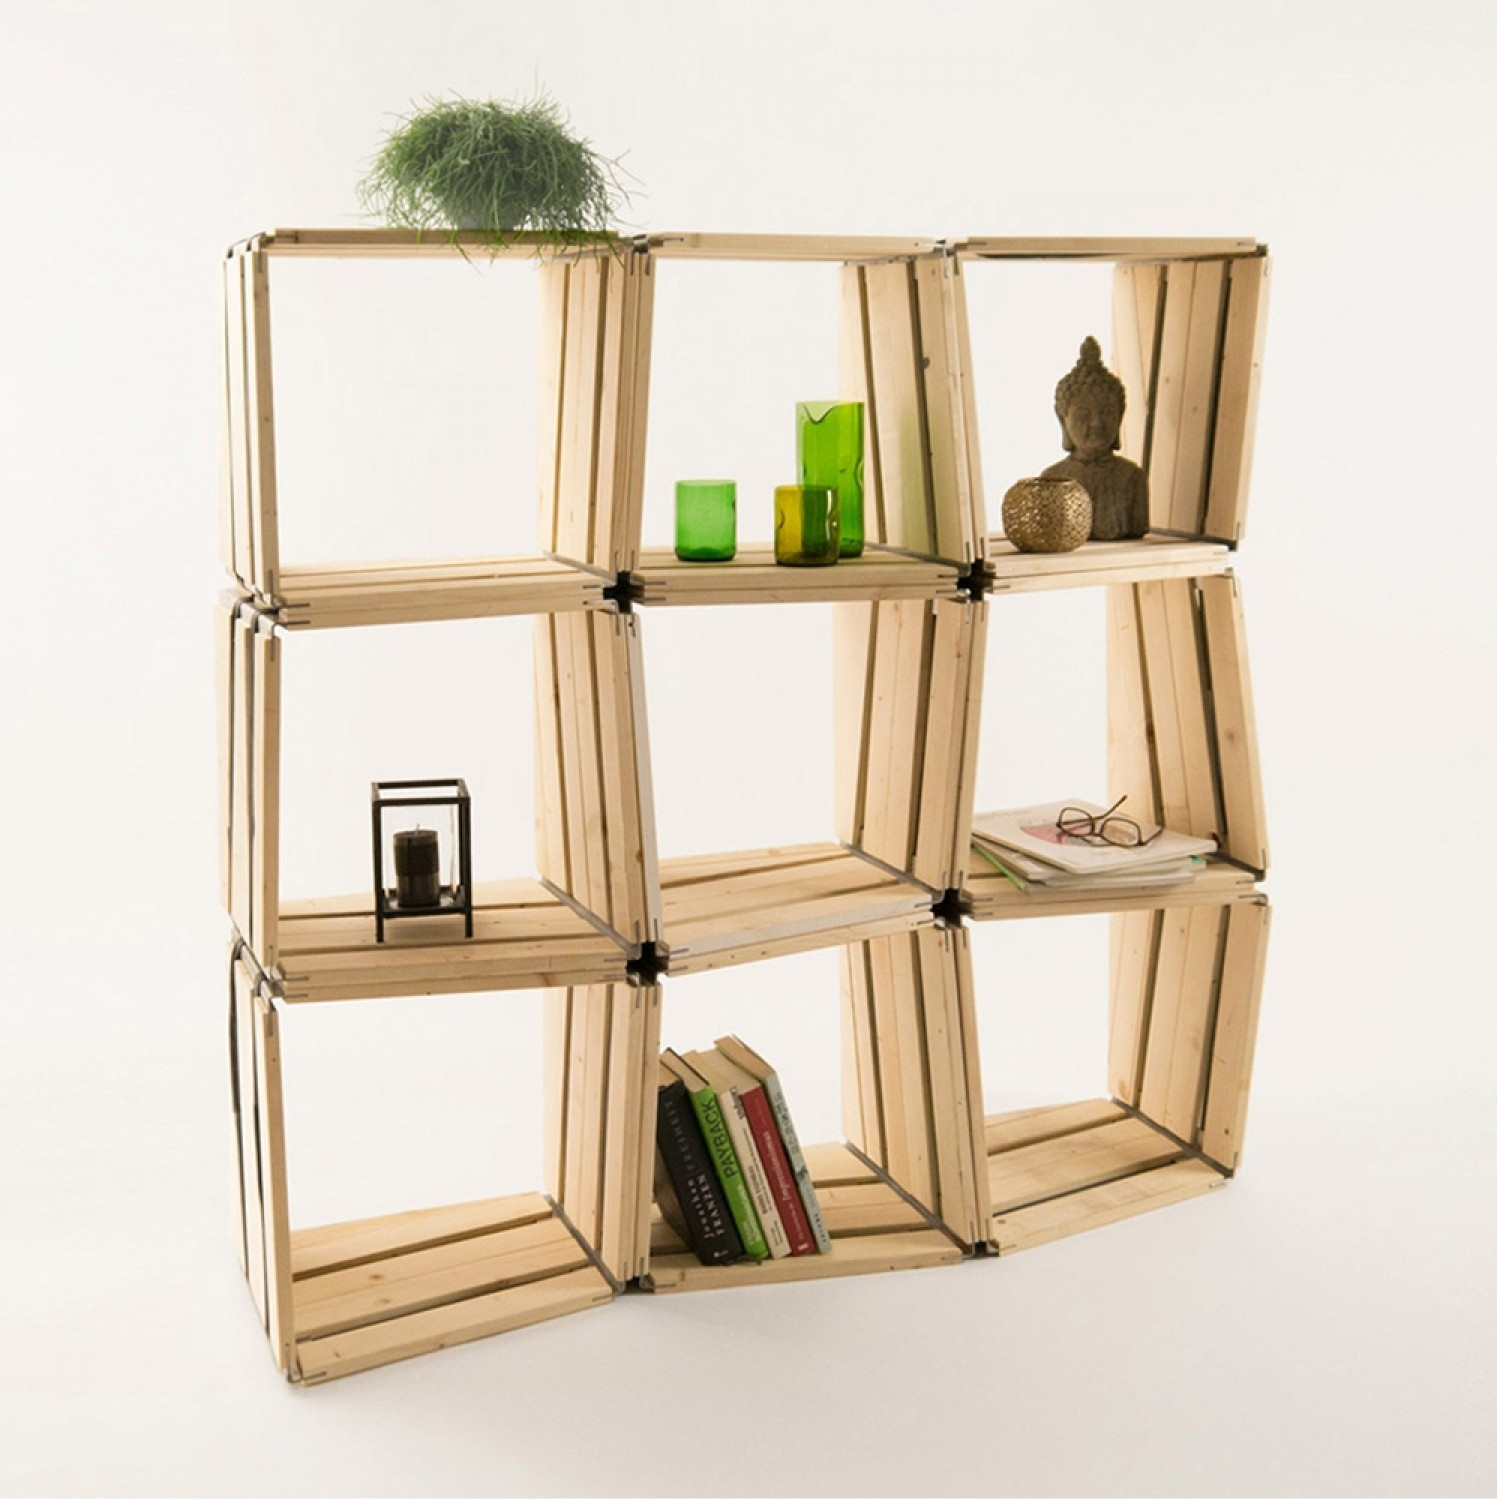 moveo.lxxx upcycled shelf module of wood - 9 pack | reditum